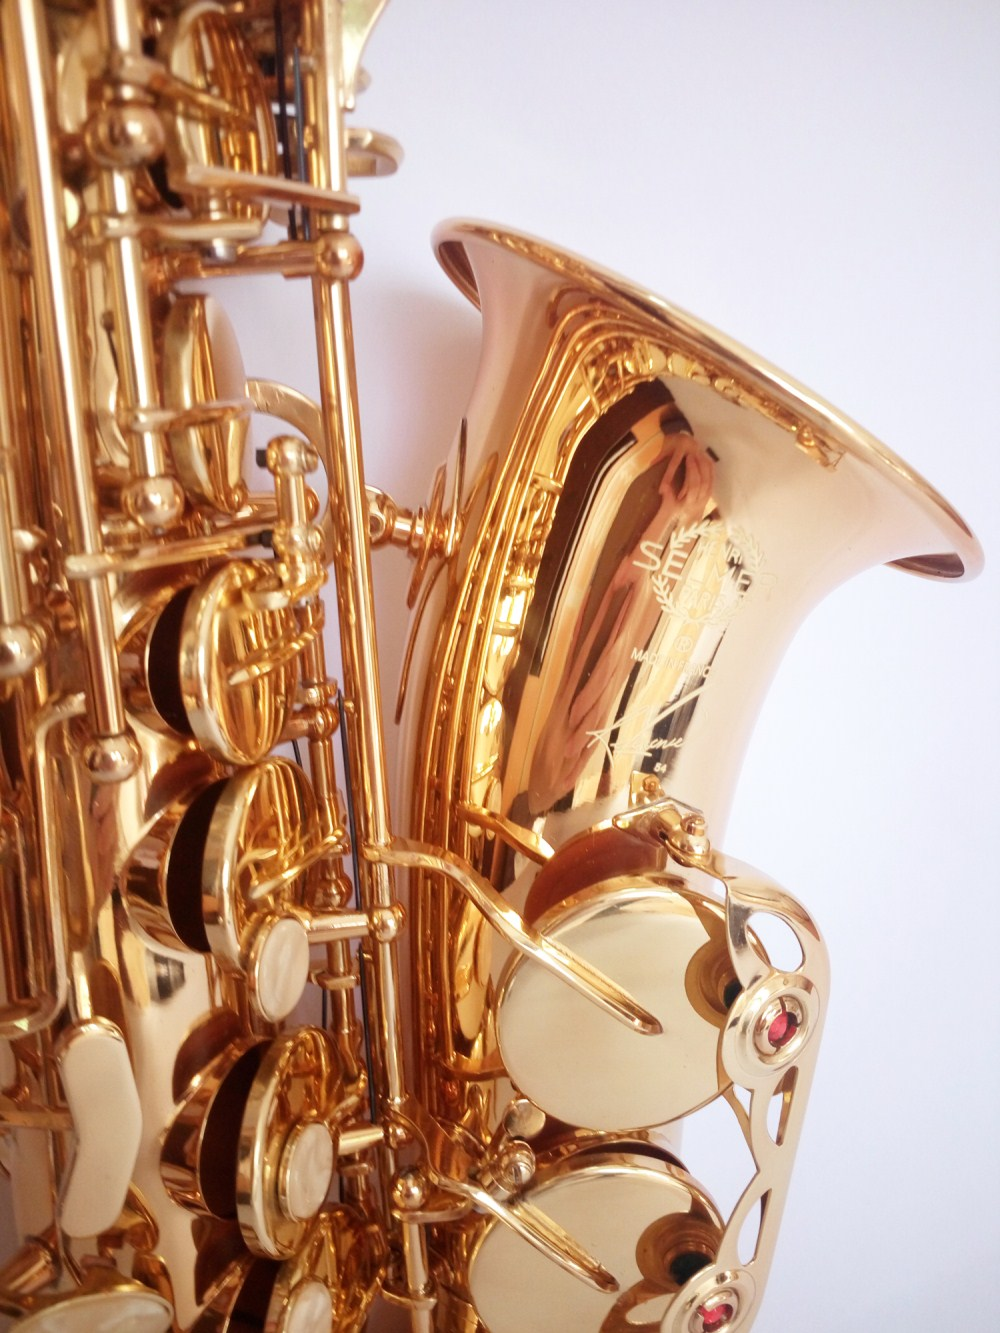 Sales Alto Sax France Selmer 54 Saxophone Eb playing music real photo shoot New Sax electrophoresis Golden Saxophone Promotions free shipping france henri selmer saxophone alto 802 musical instrument alto sax gold curved saxfone mouthpiece electrophoresis